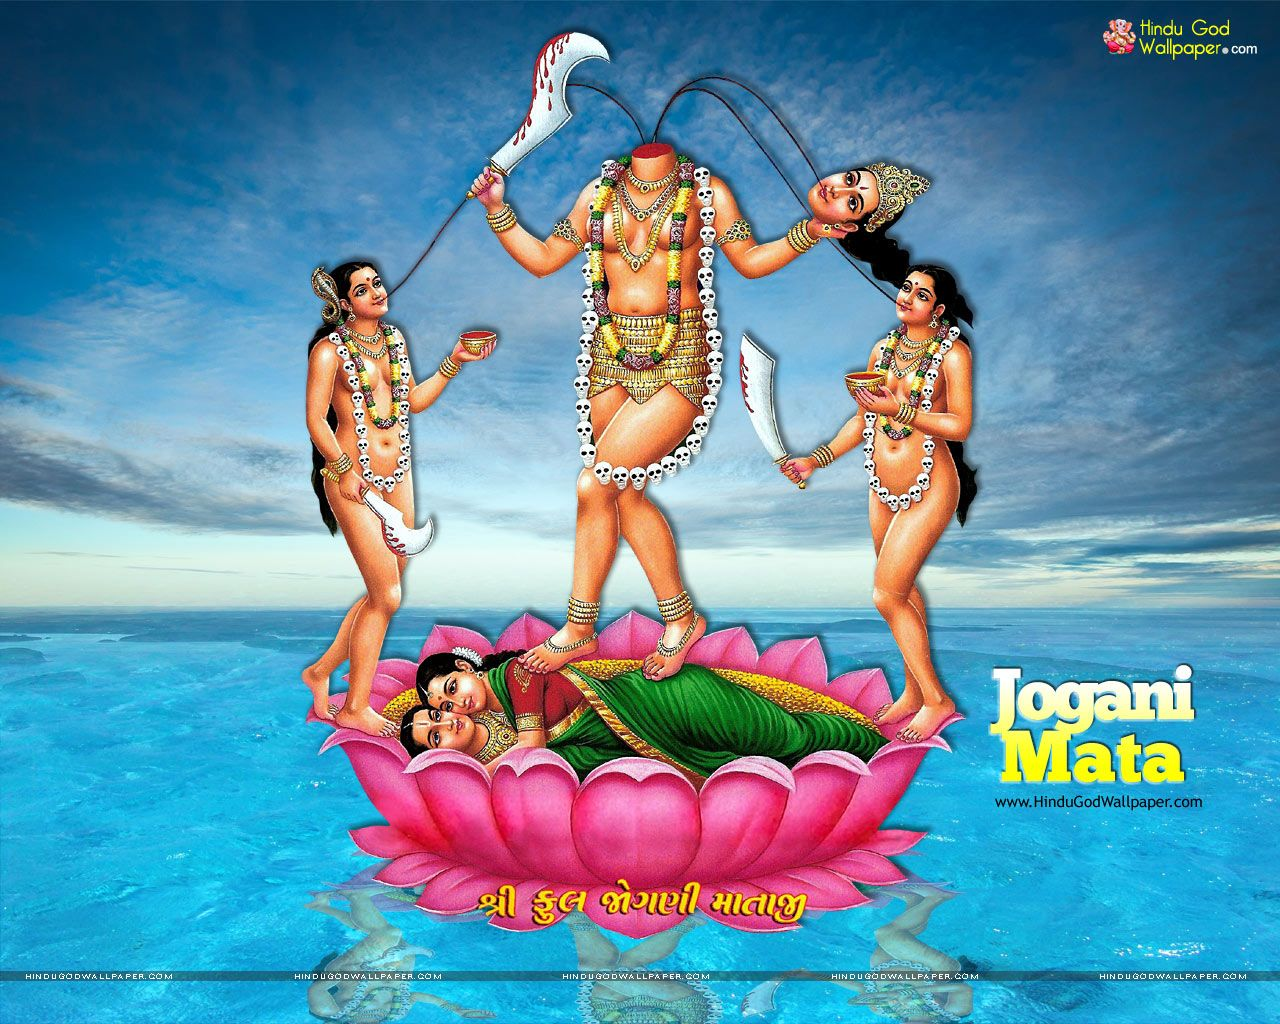 Jogani Mata Wallpapers And Photos Free Download Hindu God B